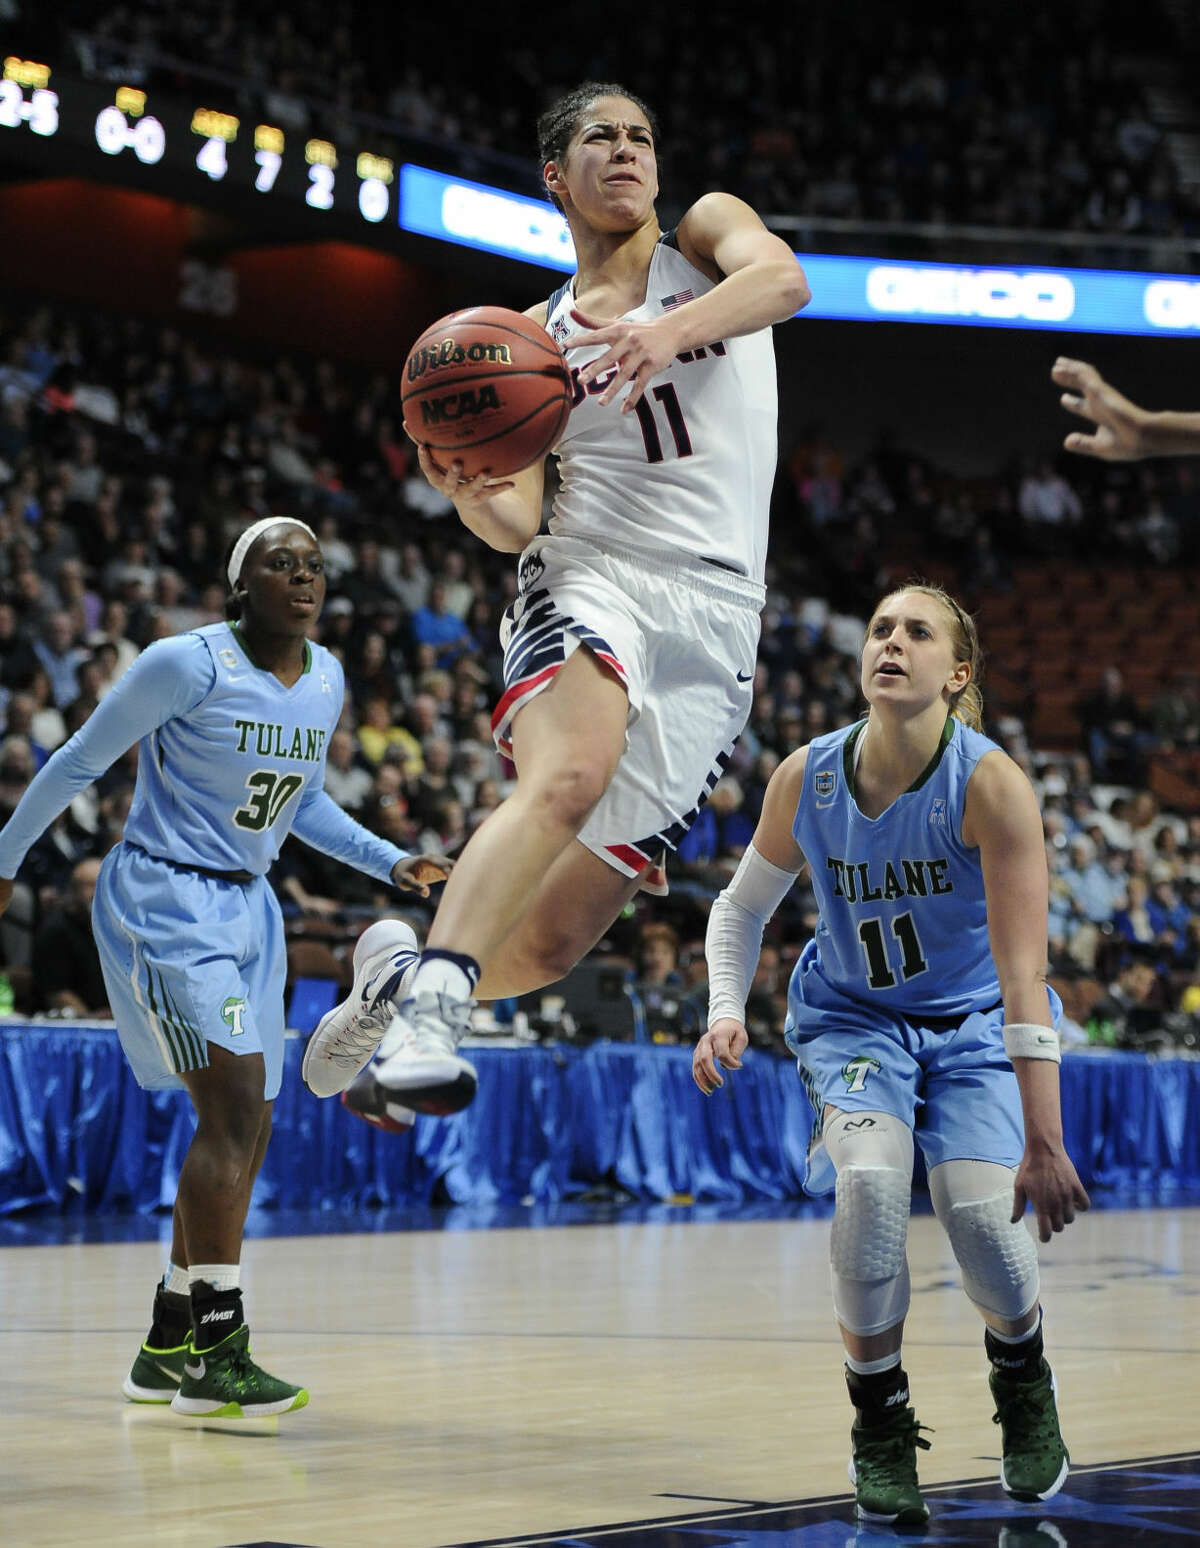 Connecticut's Kia Nurse, center, drives to the basket as Tulane's Tierra Jones, left, and Tulane's Leslie Vorpahl, right, defend, during the first half of an NCAA college basketball game in the American Athletic Conference tournament semifinals at Mohegan Sun Arena, Sunday, March 6, 2016, in Uncasville, Conn. (AP Photo/Jessica Hill)